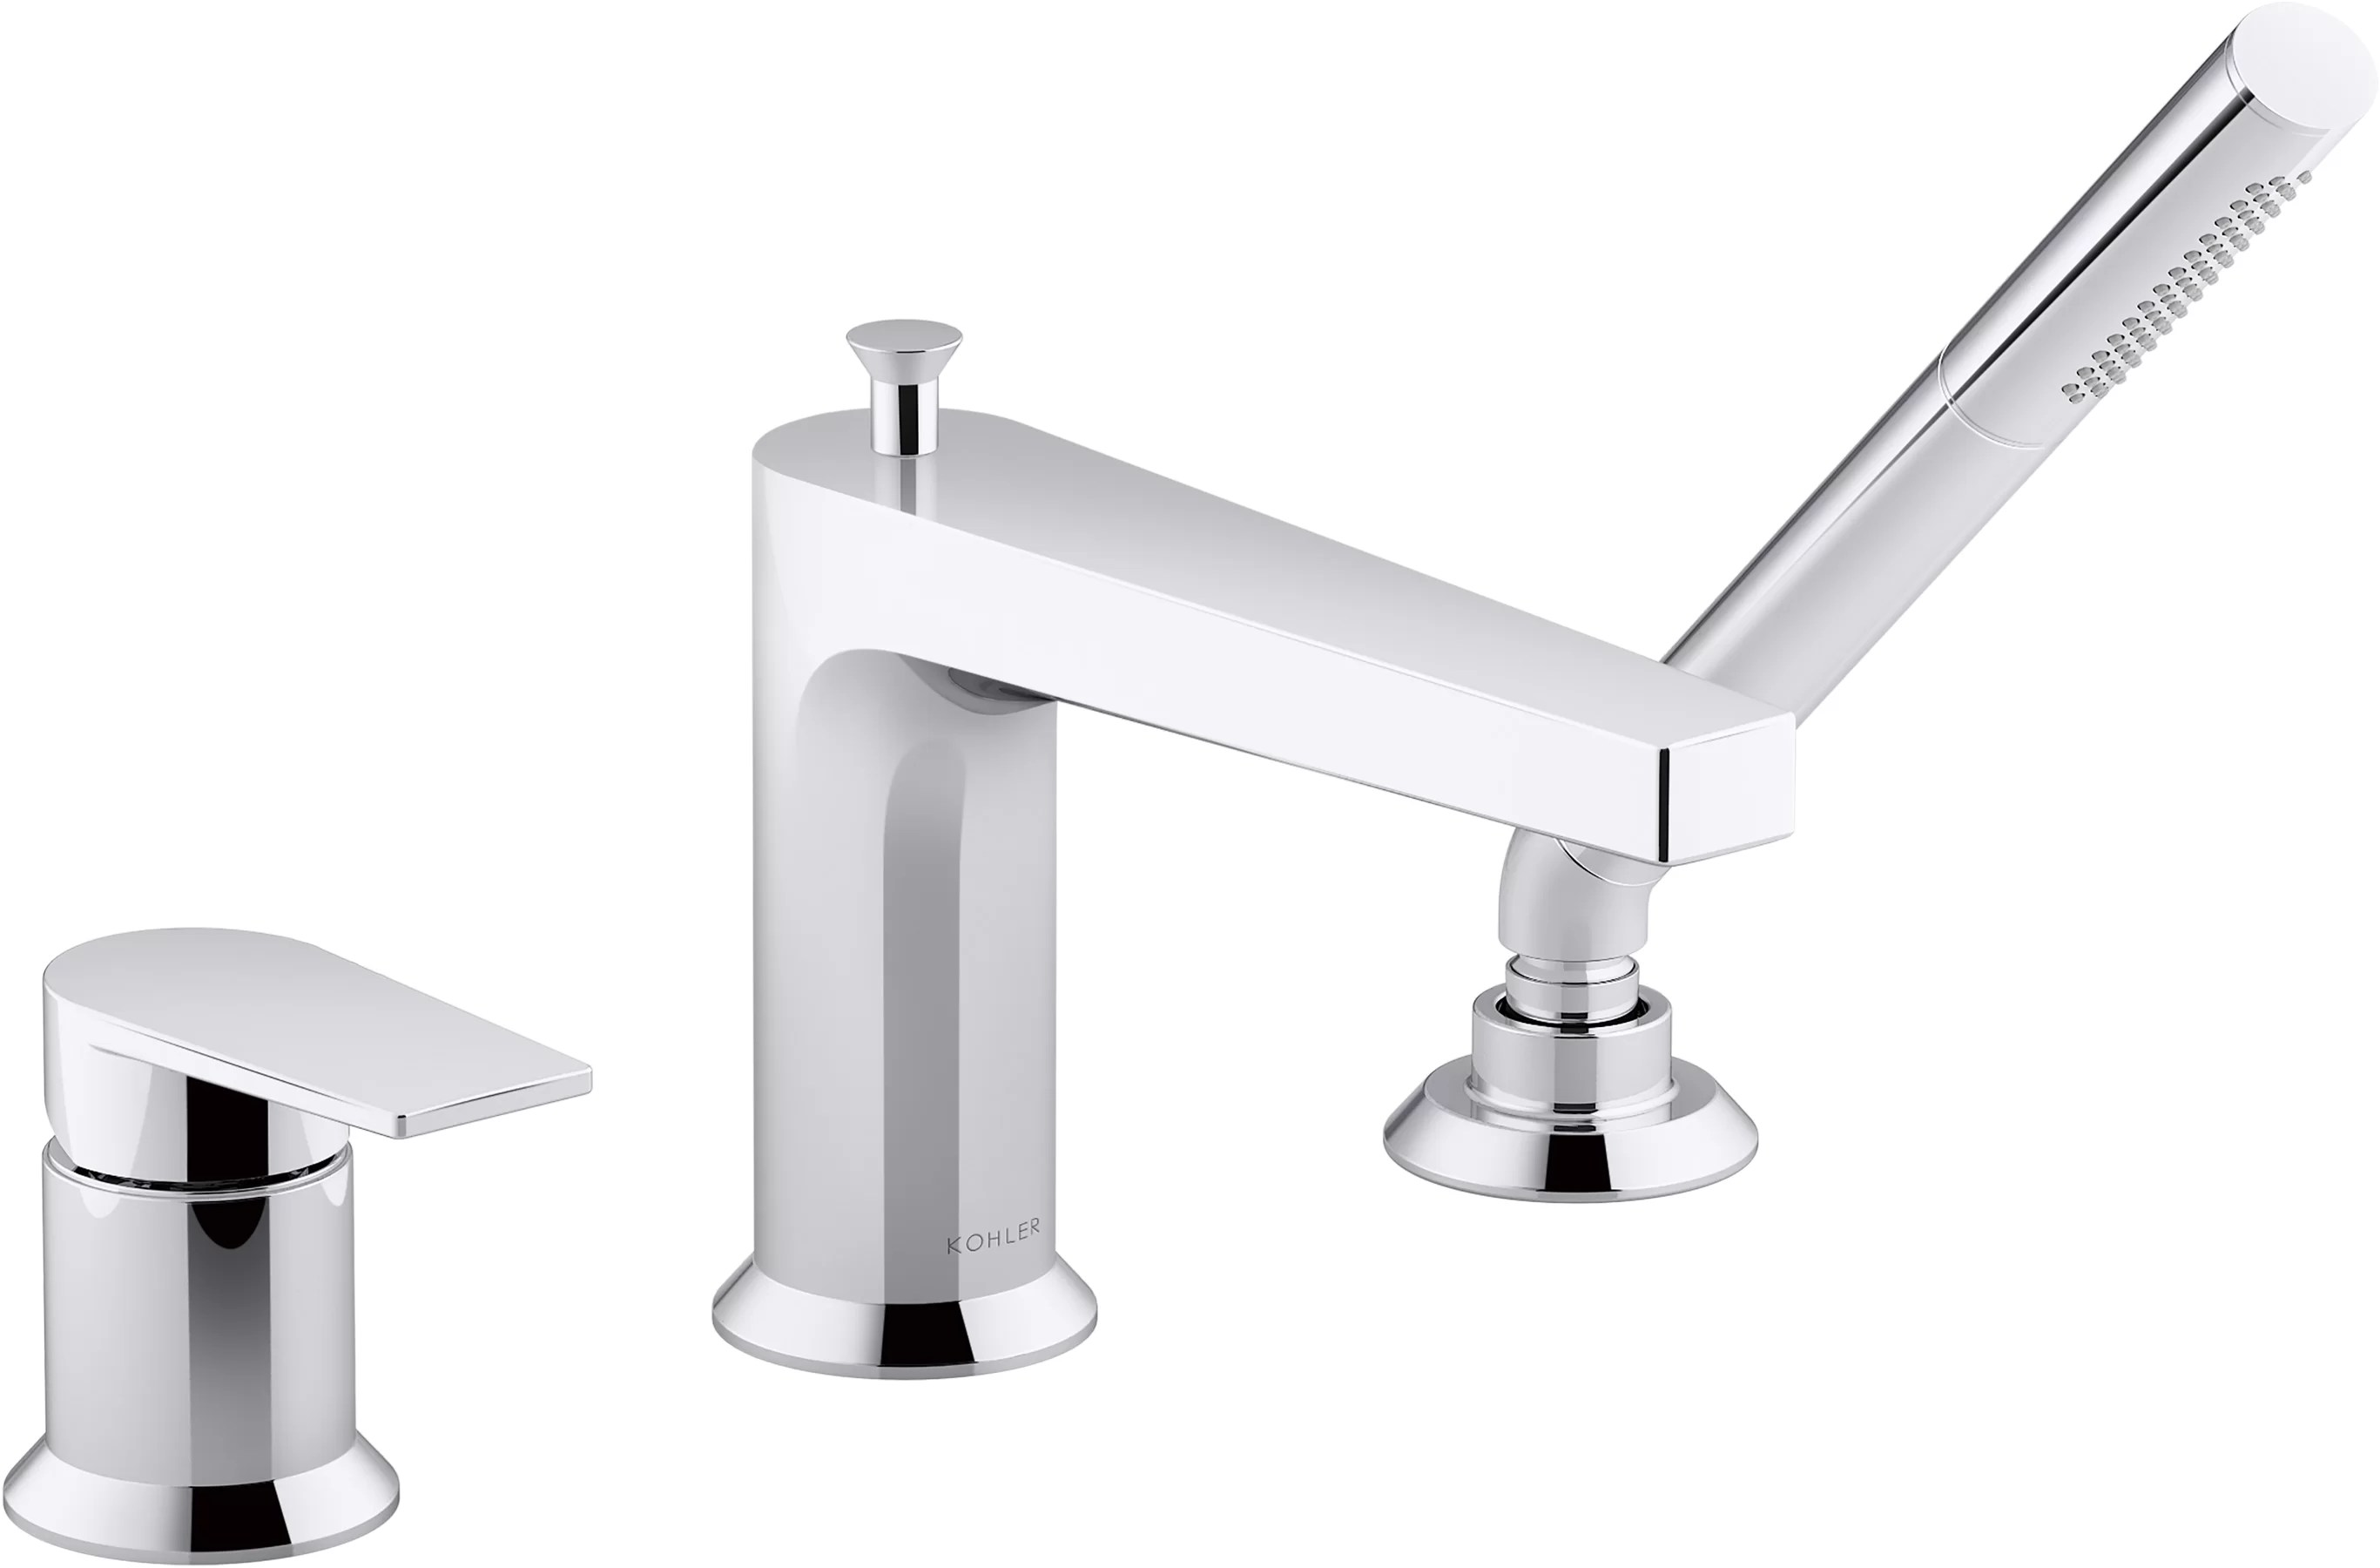 taut single handle deck mounted roman tub faucet with diverter and handshower